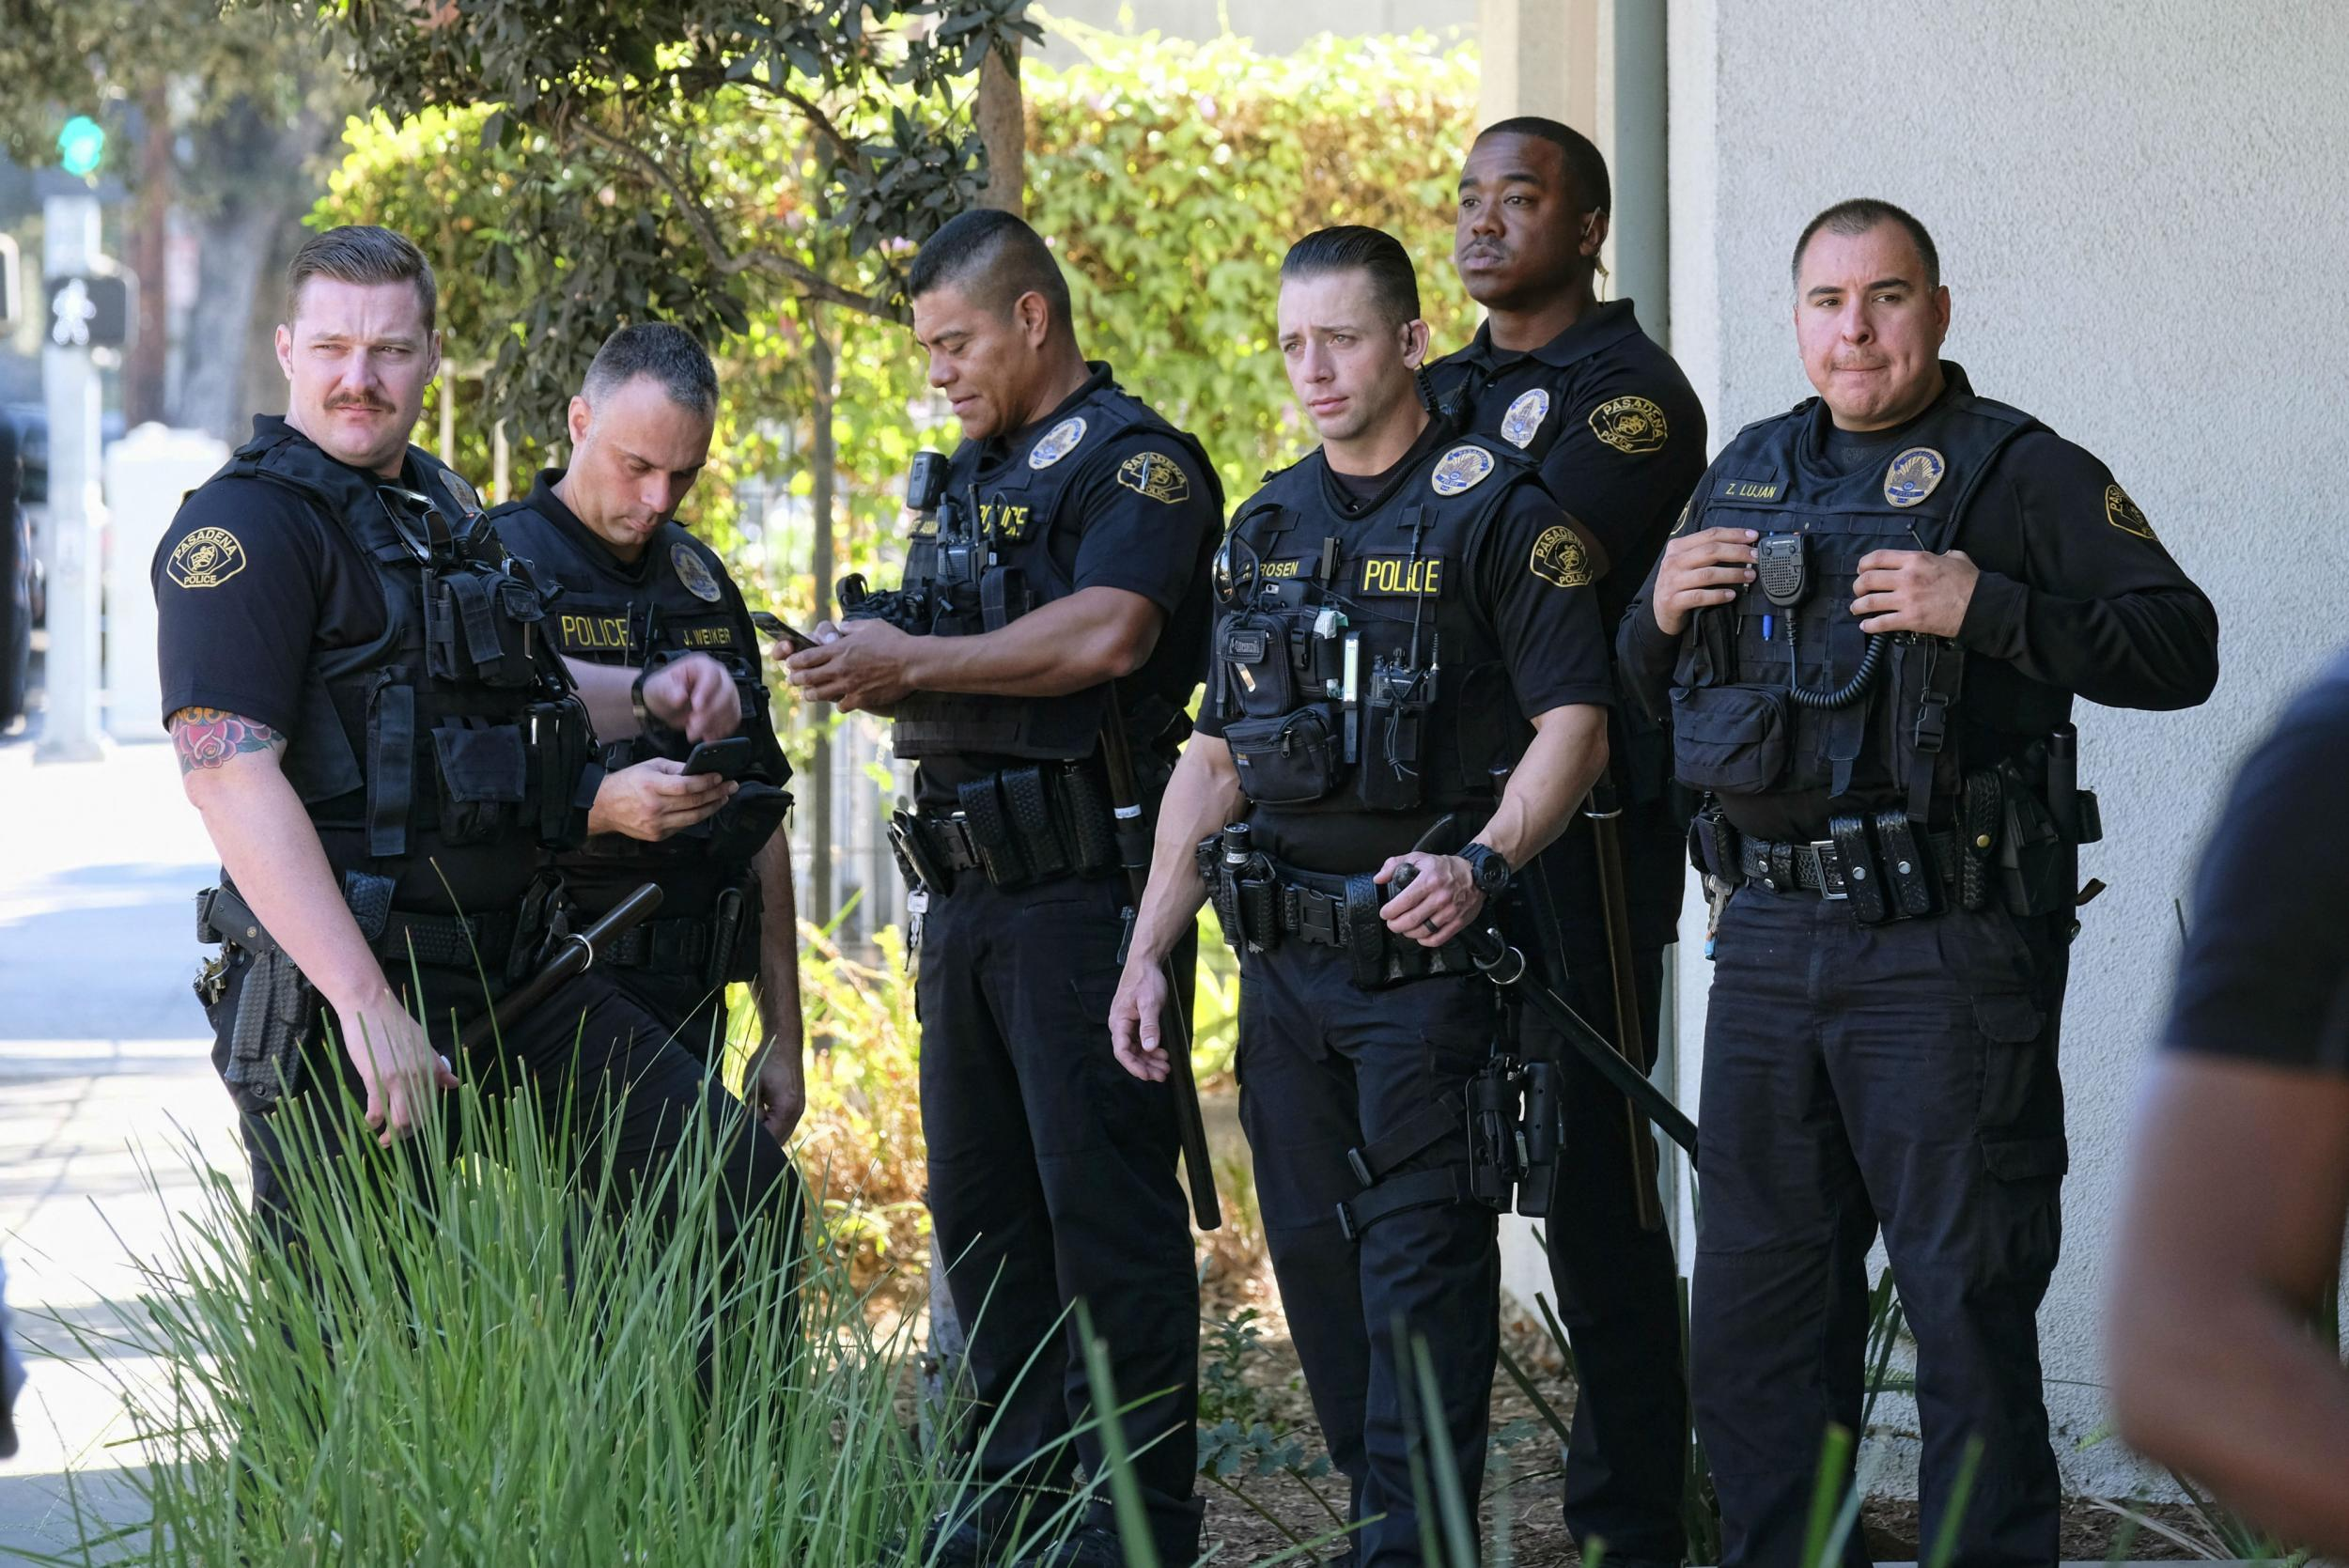 Black man dies after being tasered twice by police in california the independent - Police officer in california ...